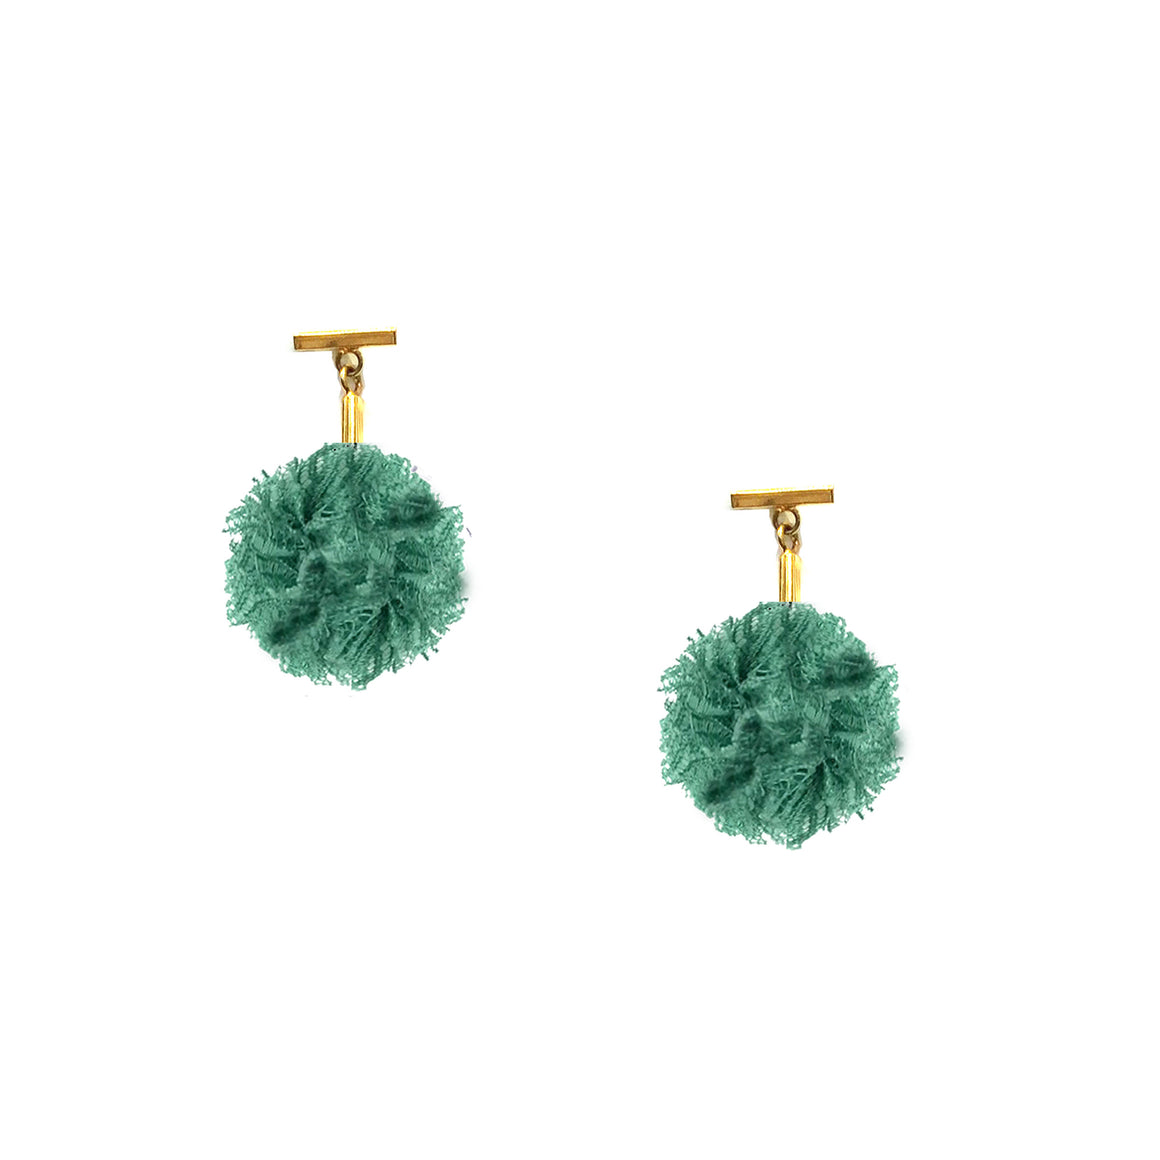 "Green 1"" Lace Pom Pom T Stud Earrings, earring, Tuleste, Tuleste"